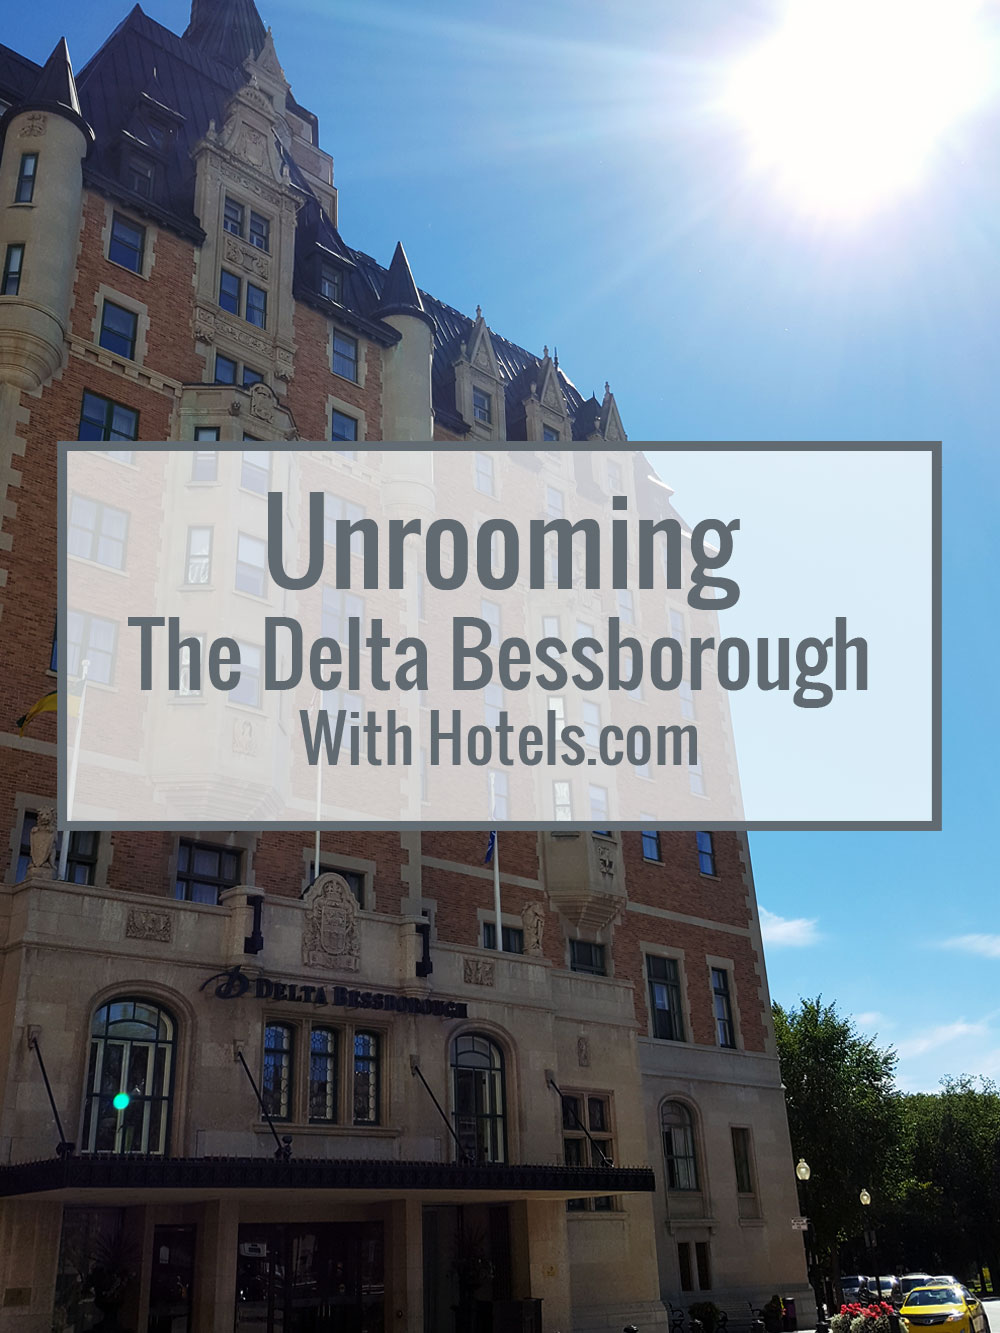 Unrooming The Delta Bessborough with Hotels.com